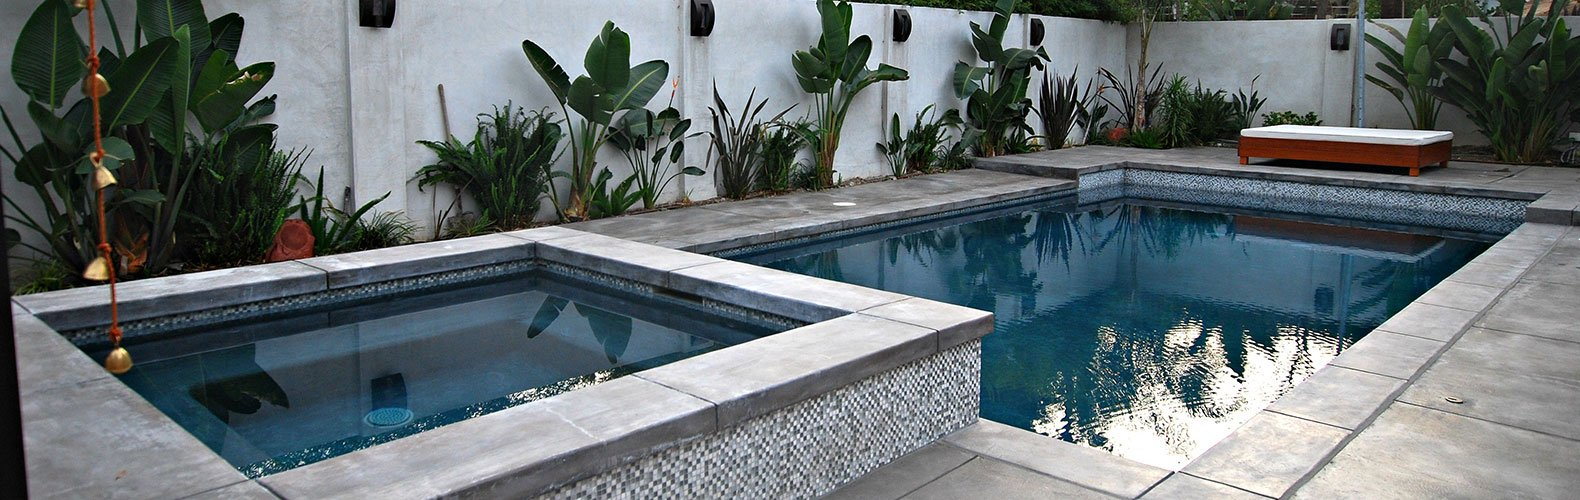 Swimming pool spa construction in los angeles ca - Swimming pool contractors columbus ohio ...